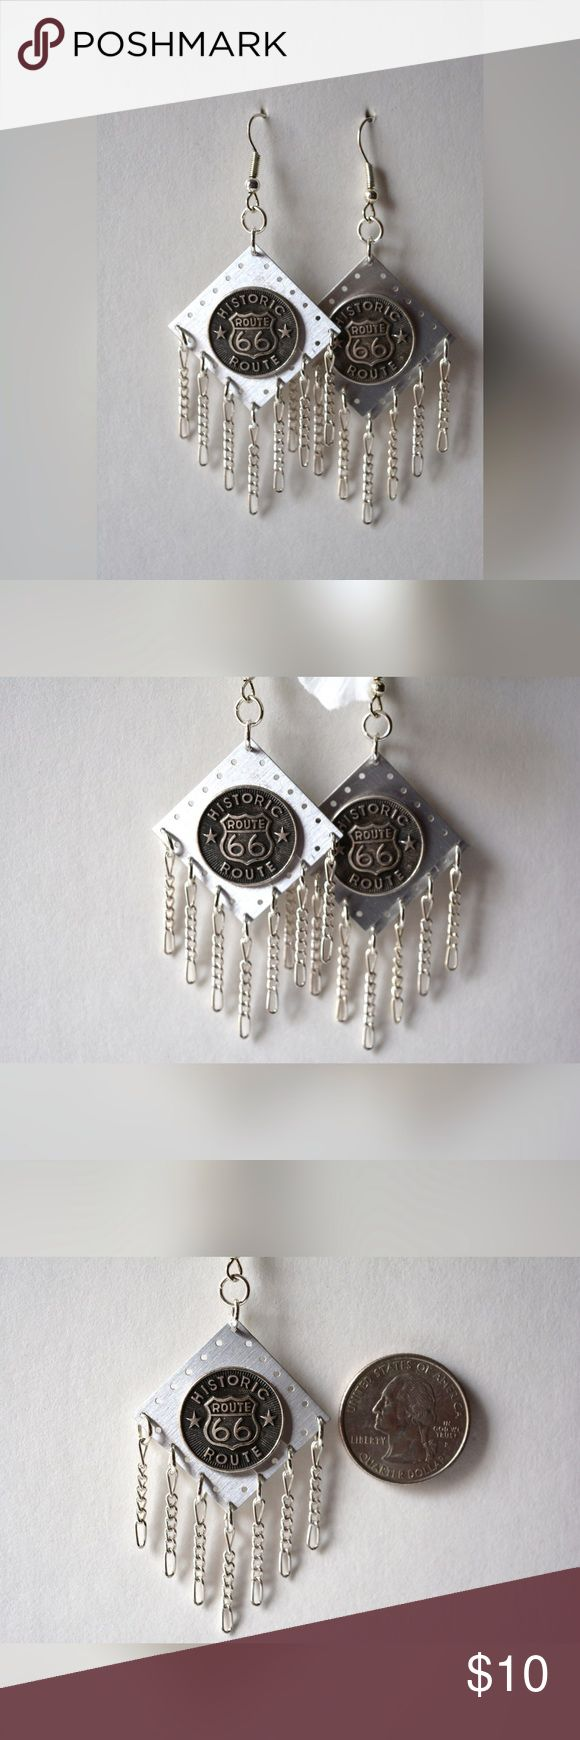 🆕 Route 66 Earrings Route 66 earrings with chain dangles. Handmade by me! Handmade by Me! Jewelry Earrings